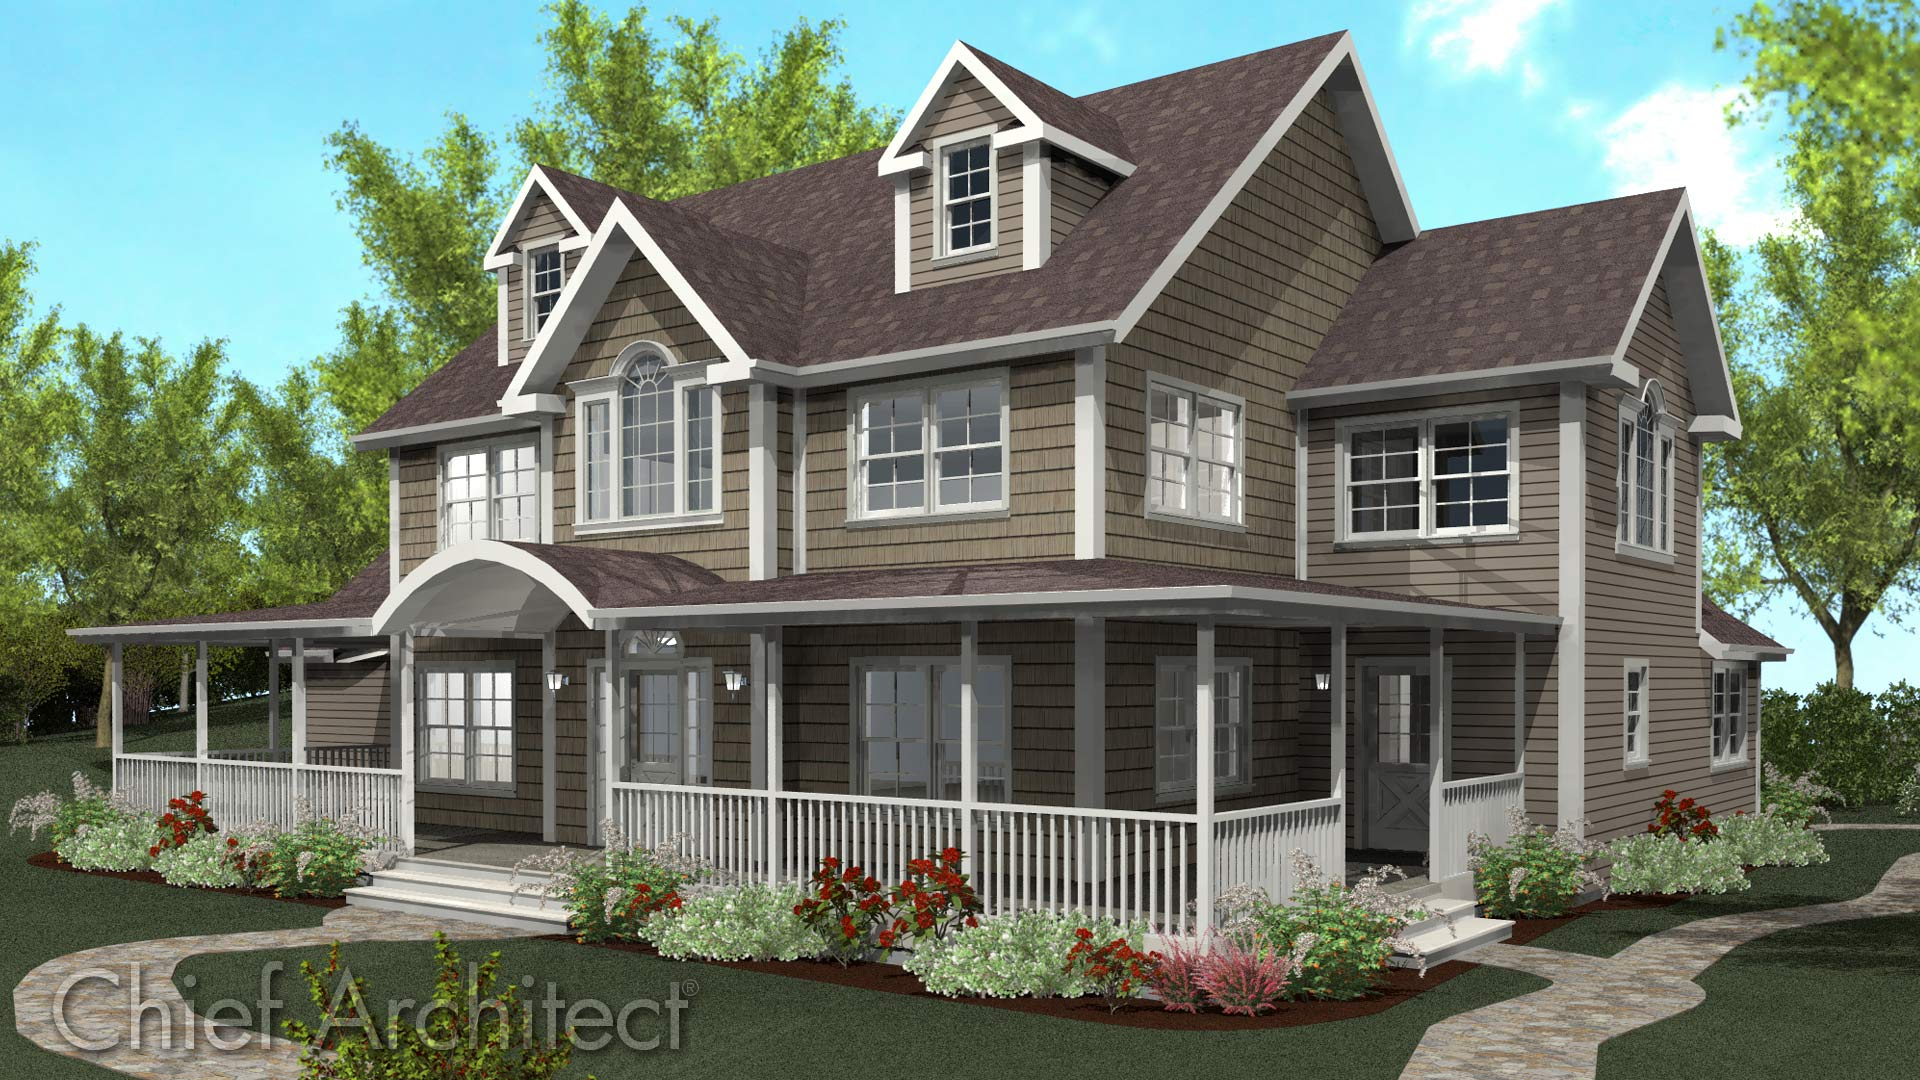 Chief architect home design software sample gallery for Chief architect house plans